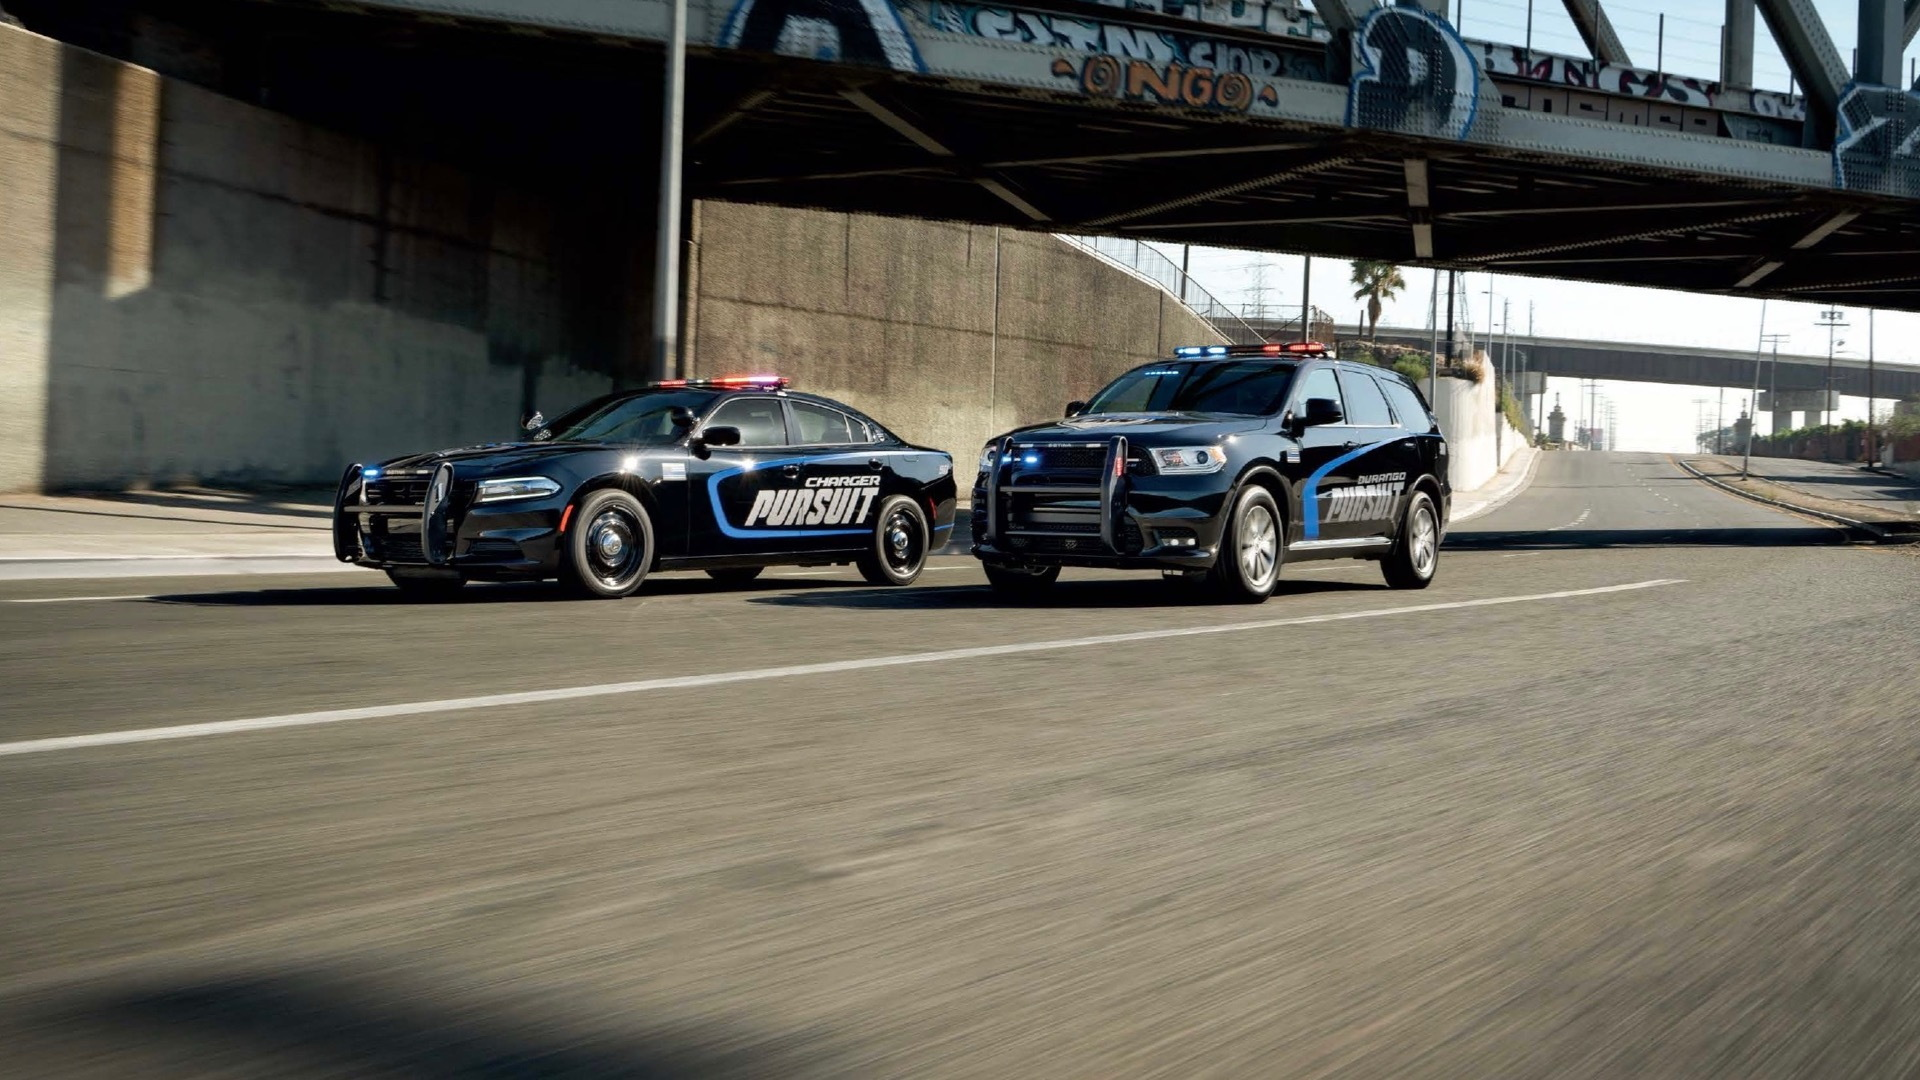 2021 Dodge Charger Pursuit and 2021 Dodge Durango Pursuit